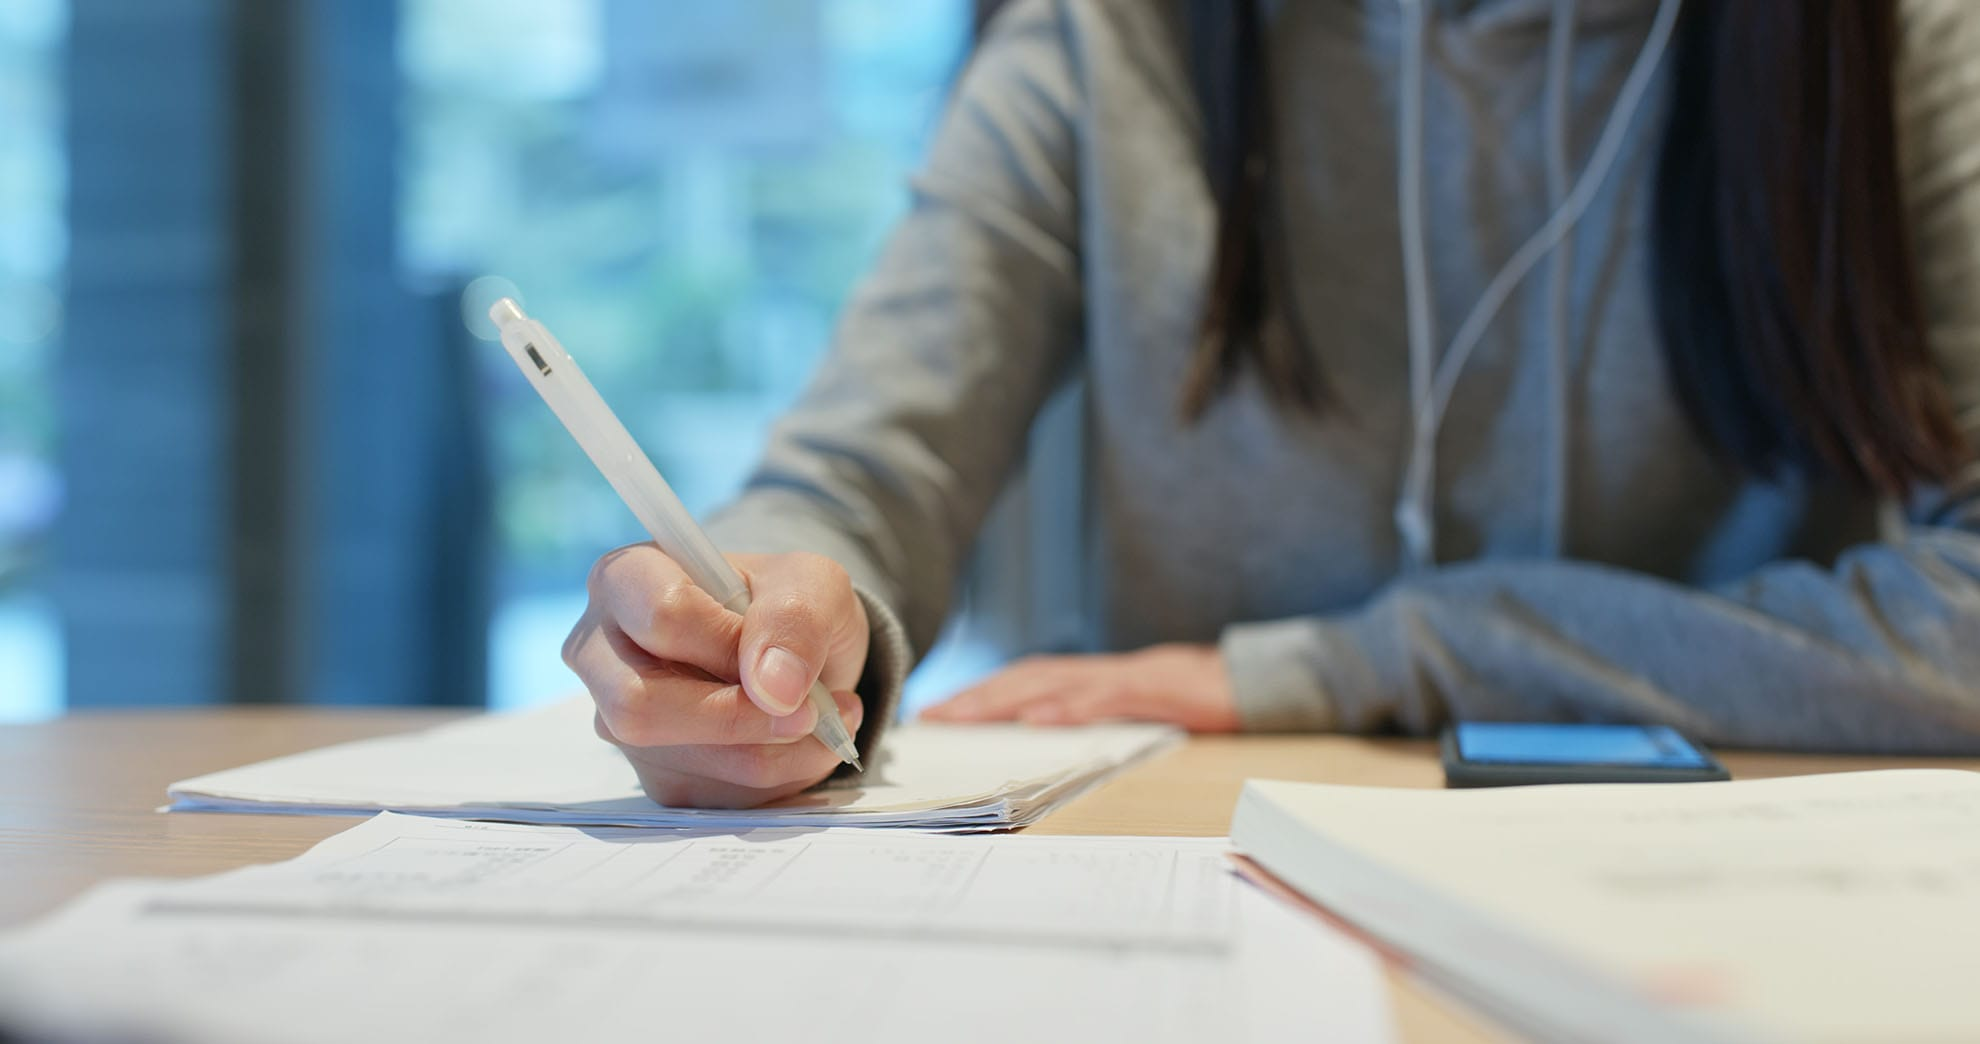 woman-study-the-note-on-paper-at-library-YH6E8LF-min